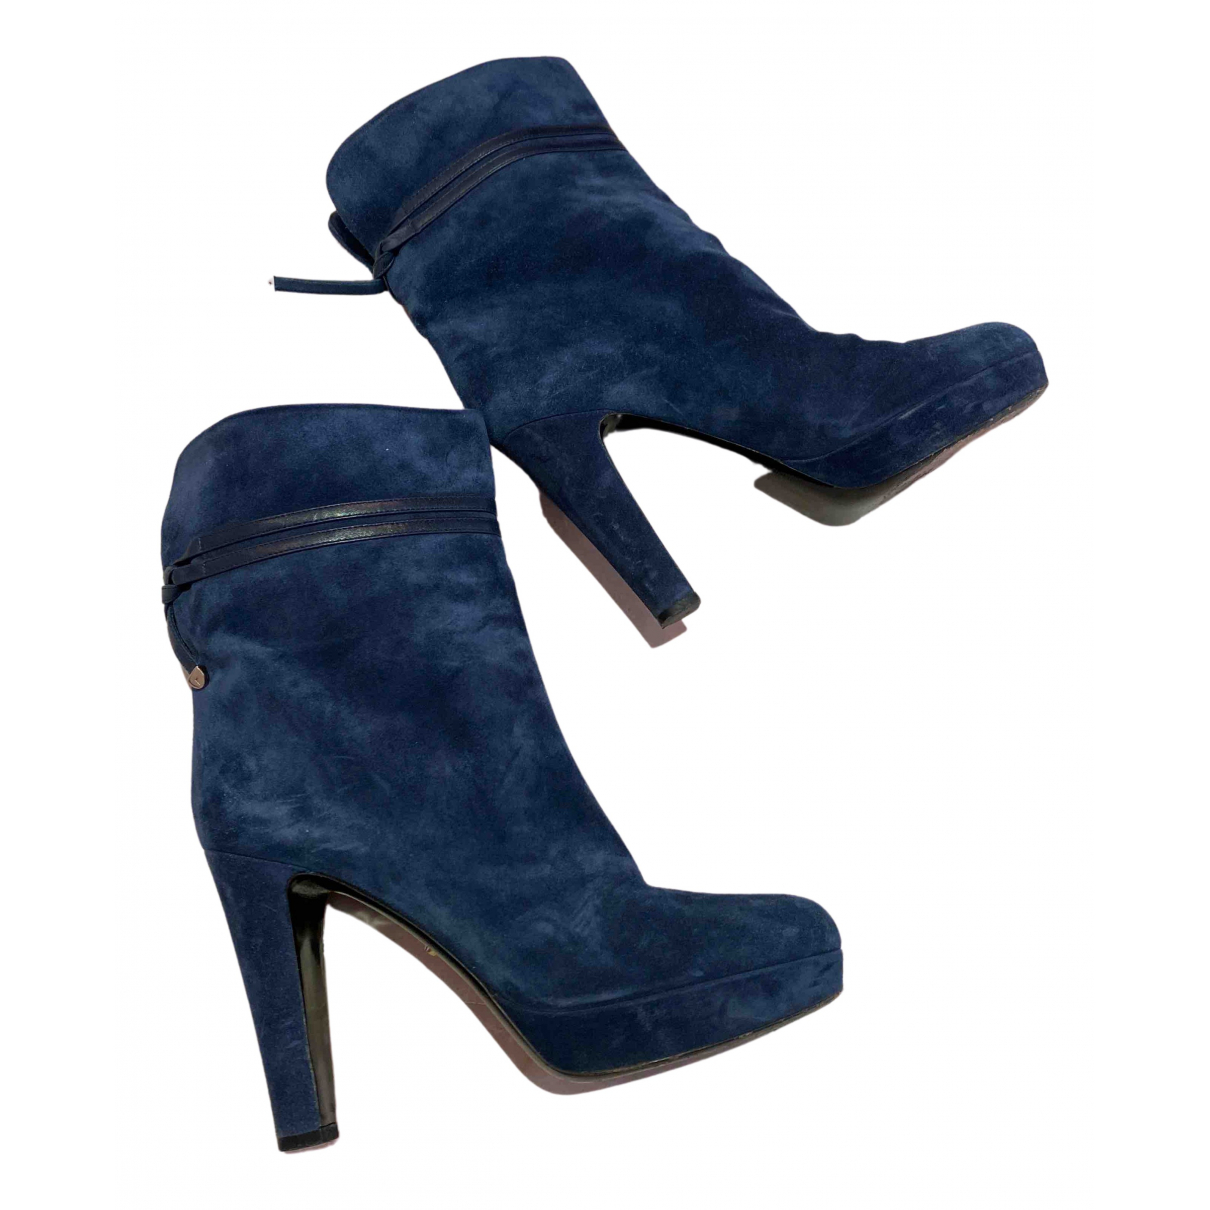 Sergio Rossi N Blue Suede Ankle boots for Women 40 IT